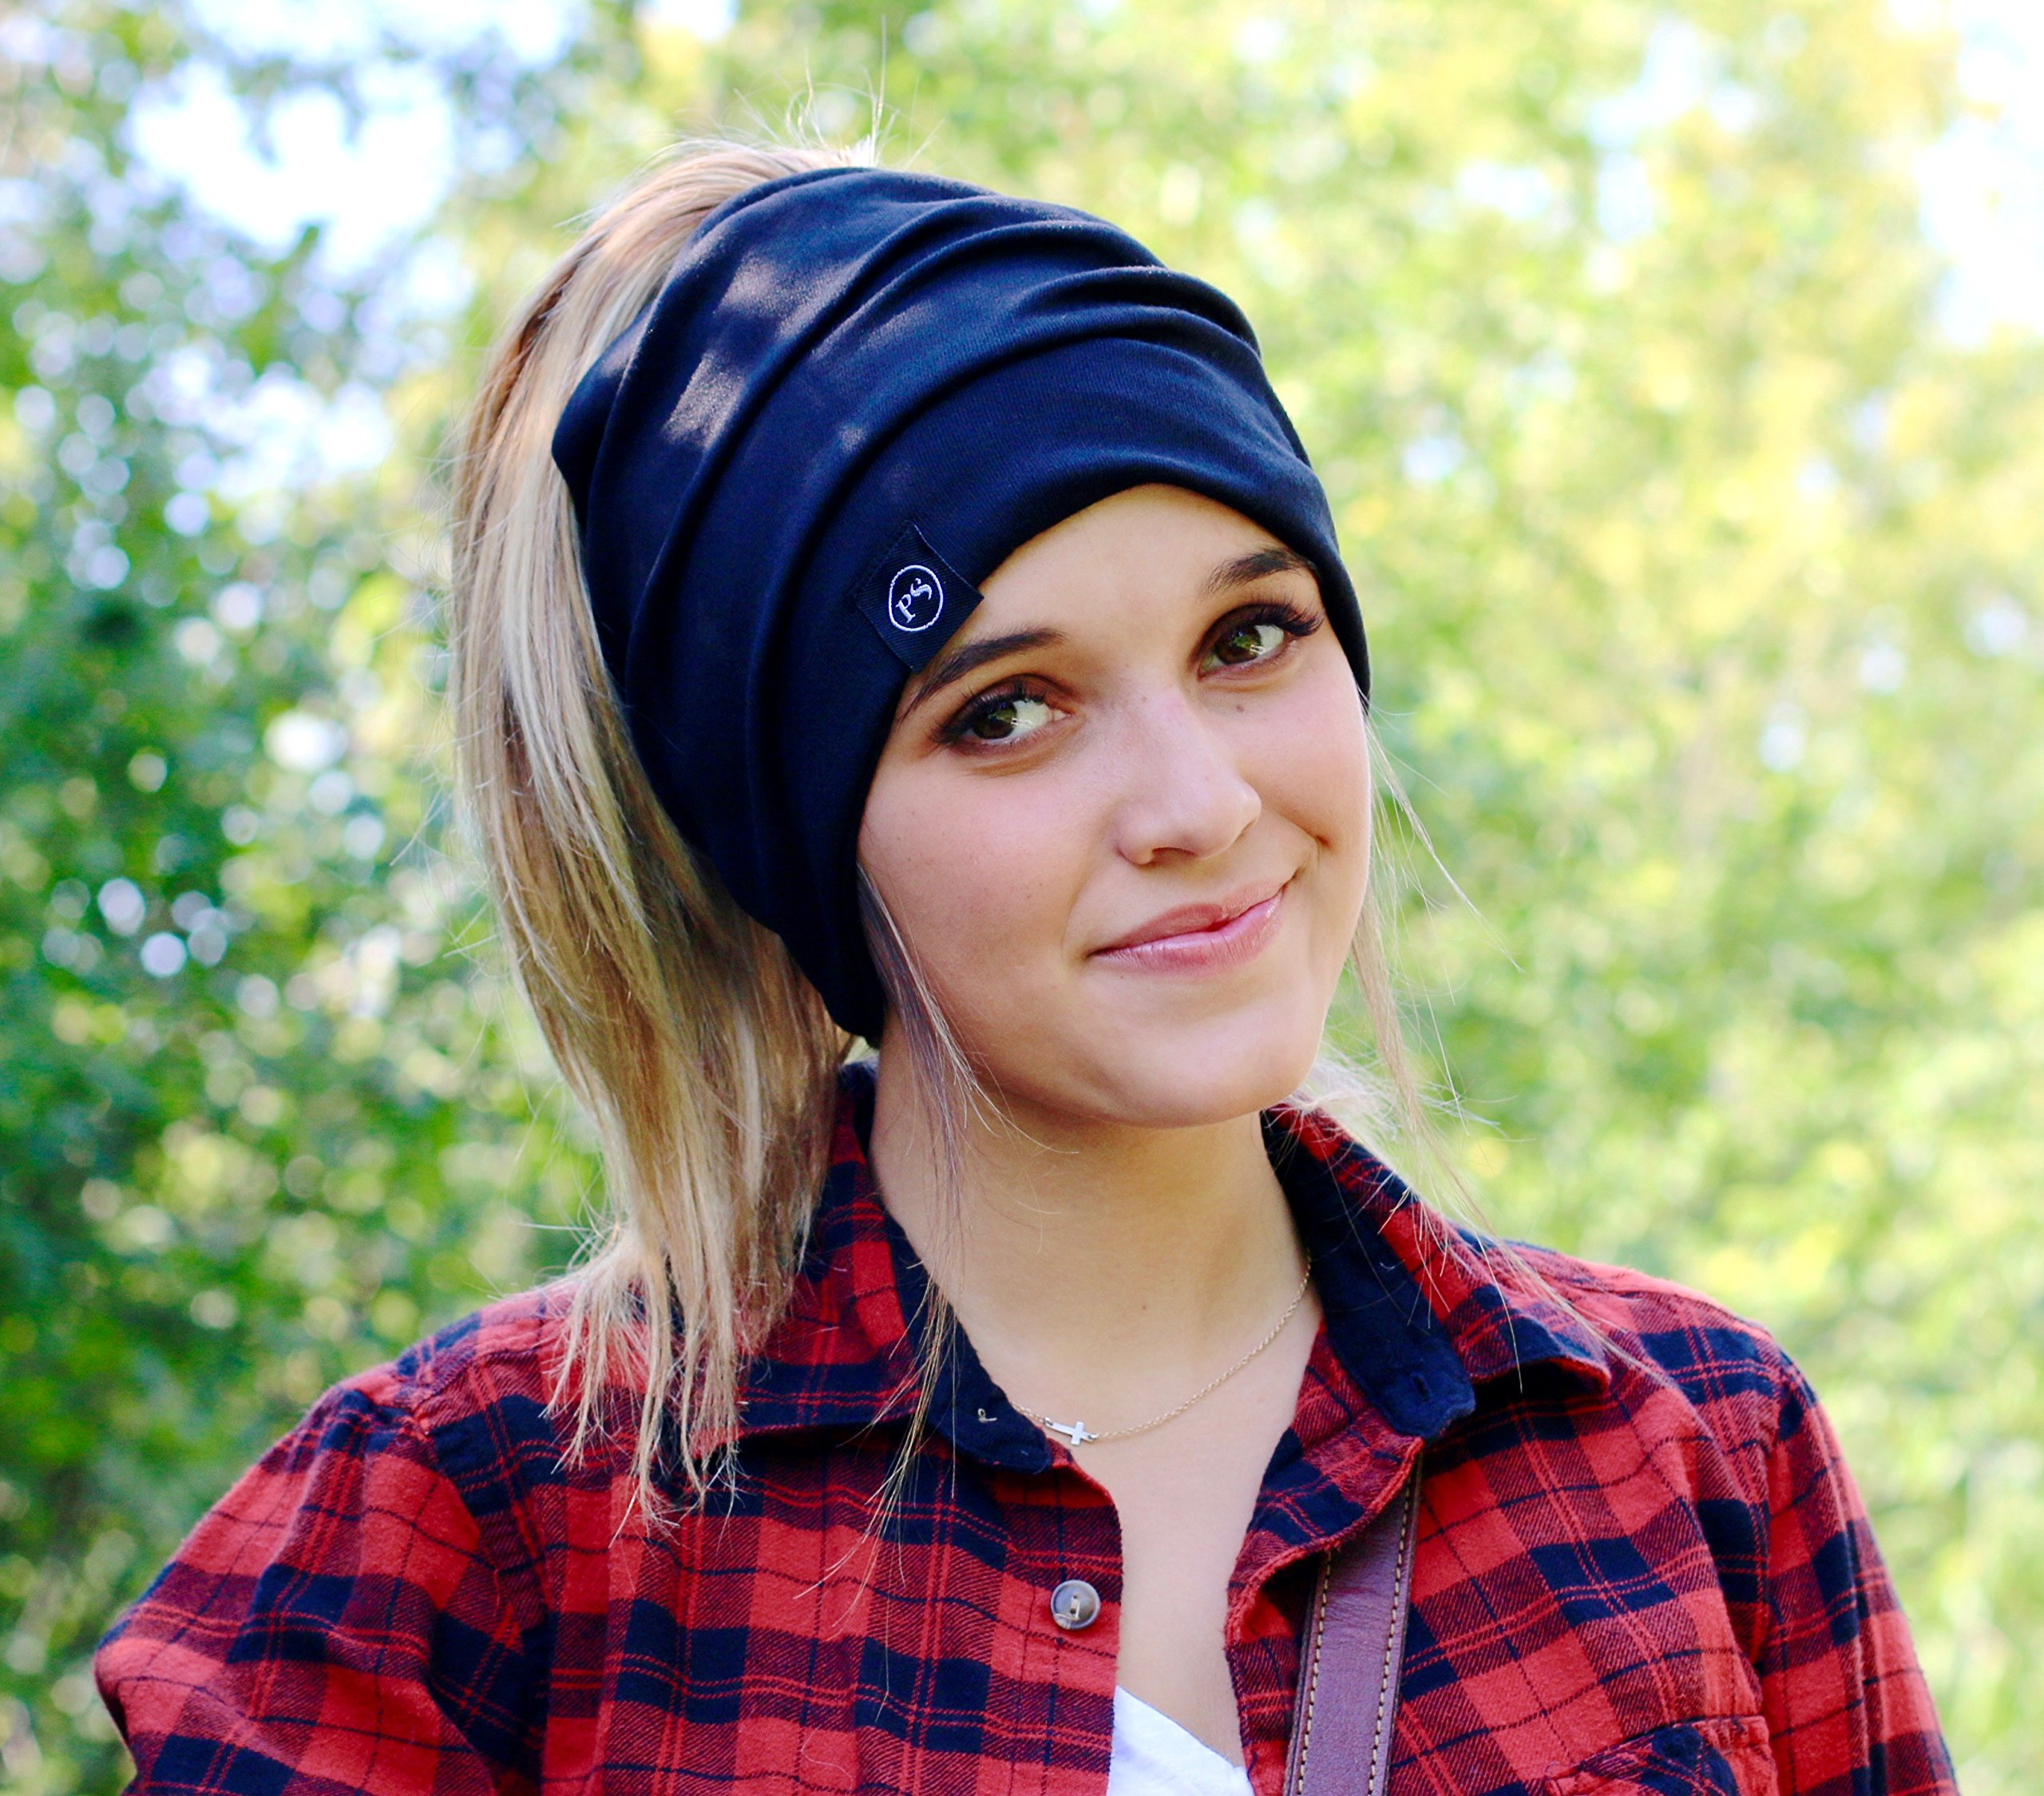 Peek a Boo Women's Beanie Slouchy Beanie with Hole for Pony Tail or Sloppy Bun perfect for Work Out by Pretty Simple (Black) by Pretty Simple (Image #7)